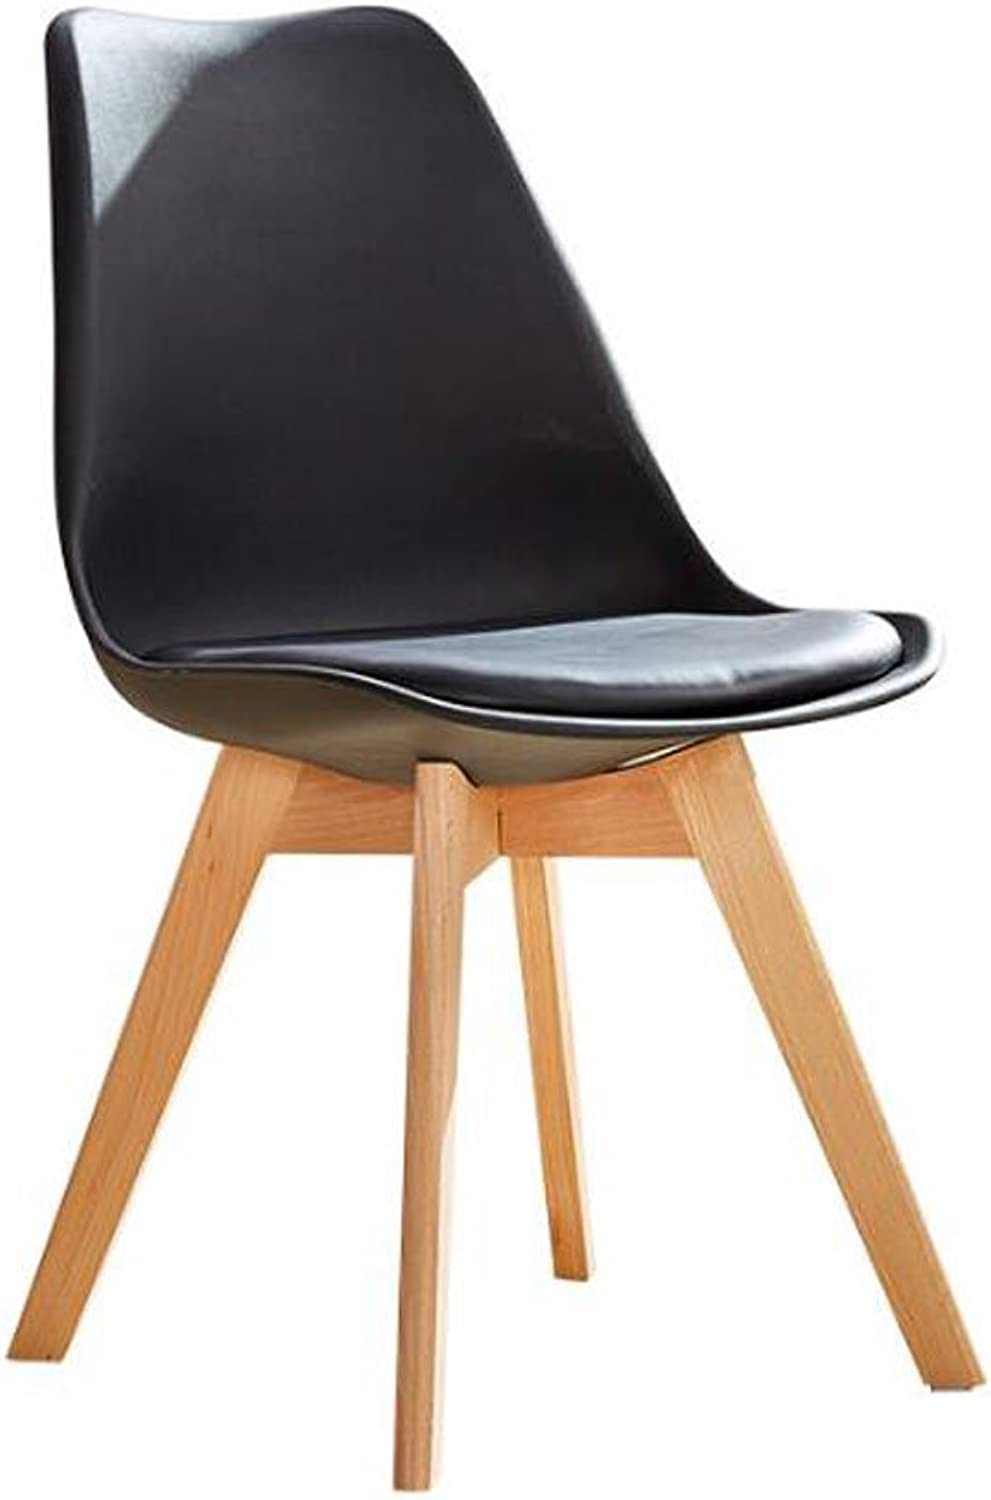 AJZGFDining Chair, Kitchen Chair Solid Wood Dining Chair, Modern Minimalist Chair, Computer Chair, Casual Fashion Office Chair, Home Stool. (color   D)